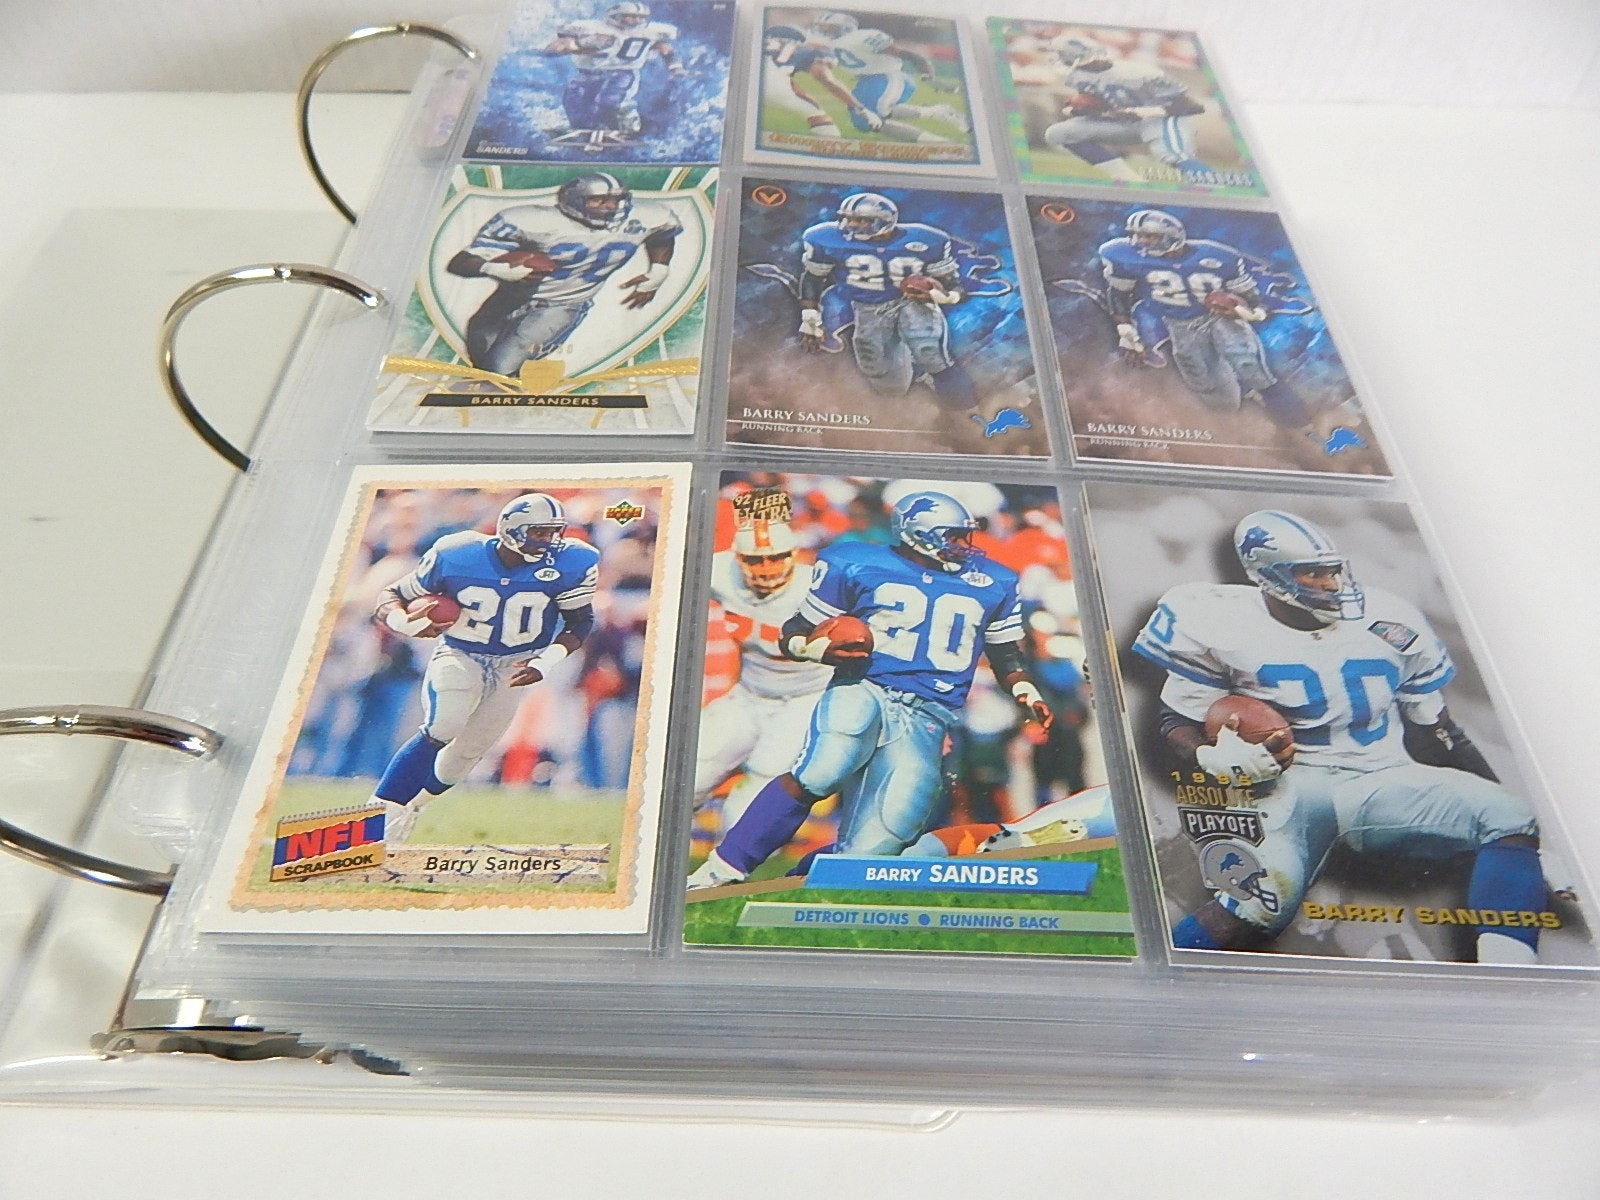 Large Album of Football Cards - Around 700 Card Count